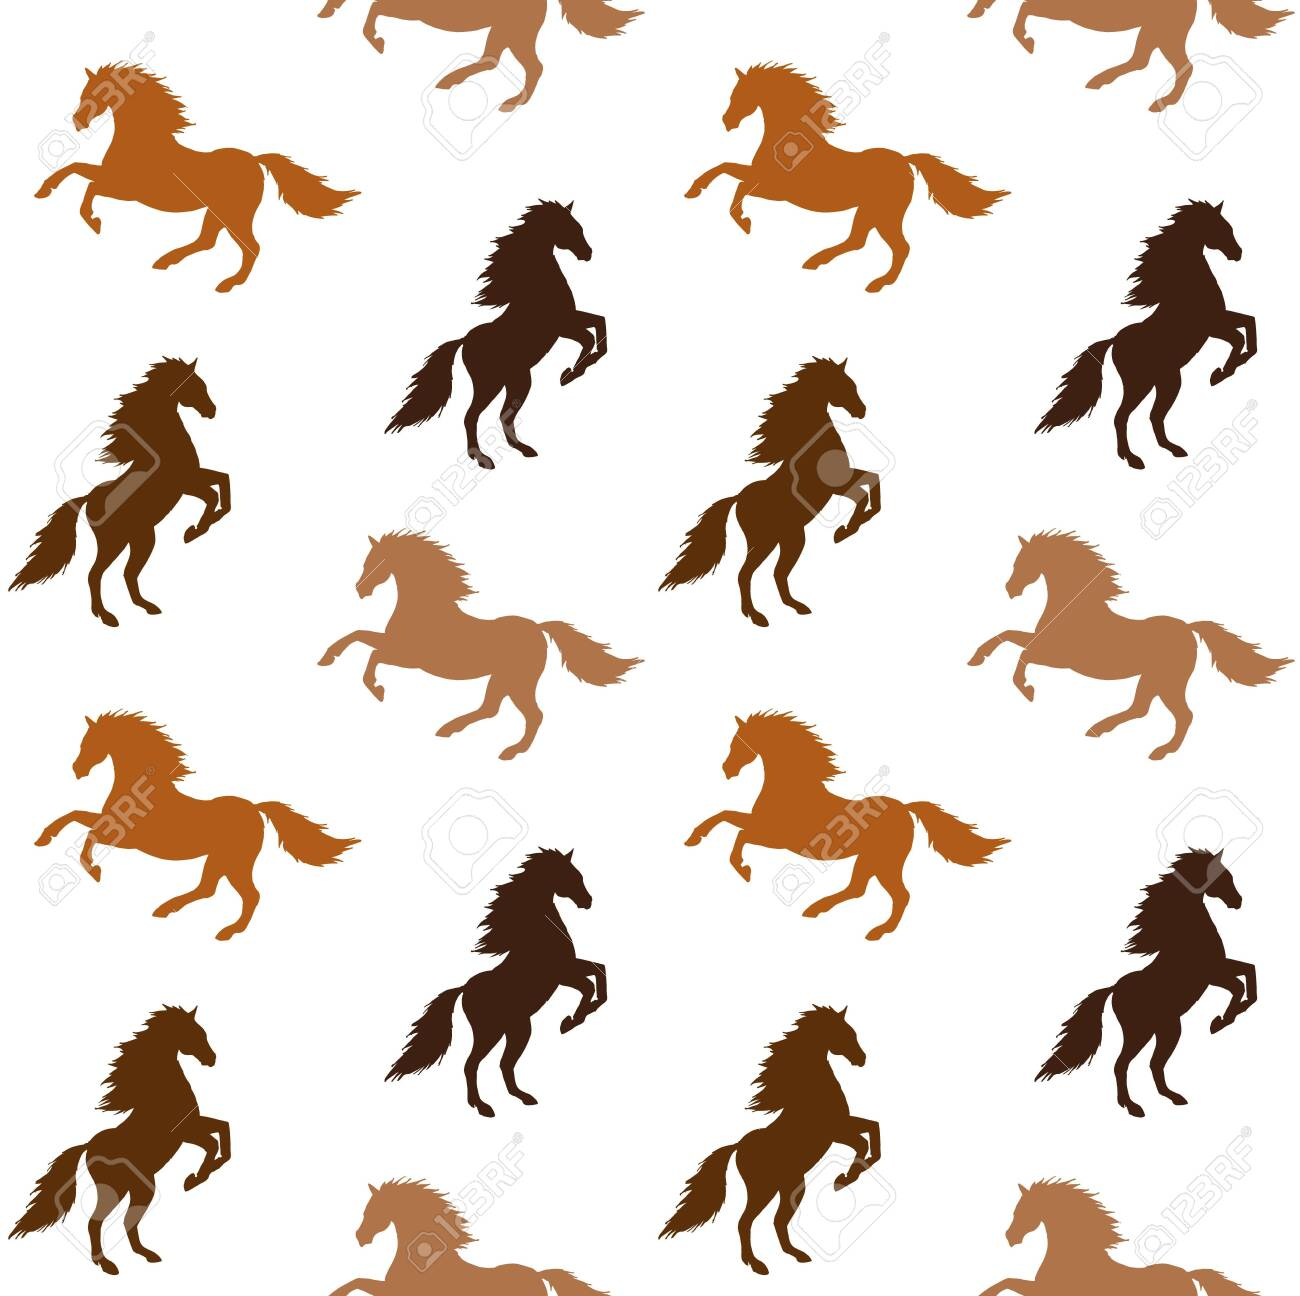 Vector Seamless Pattern Of Different Color Horses Silhouette Royalty Free Cliparts Vectors And Stock Illustration Image 149340761